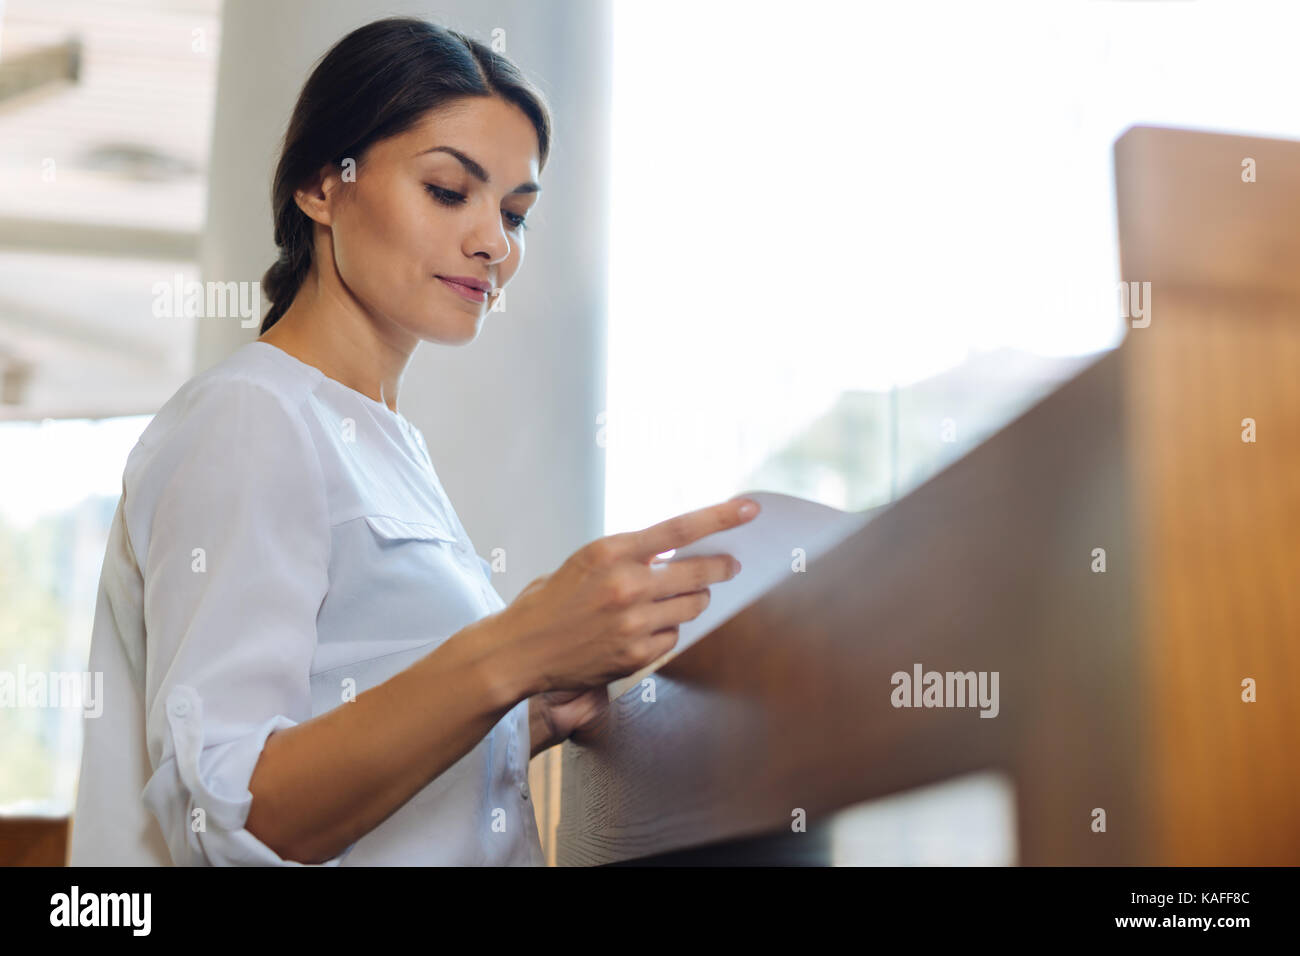 Delicate young woman reading at the cafe counter - Stock Image